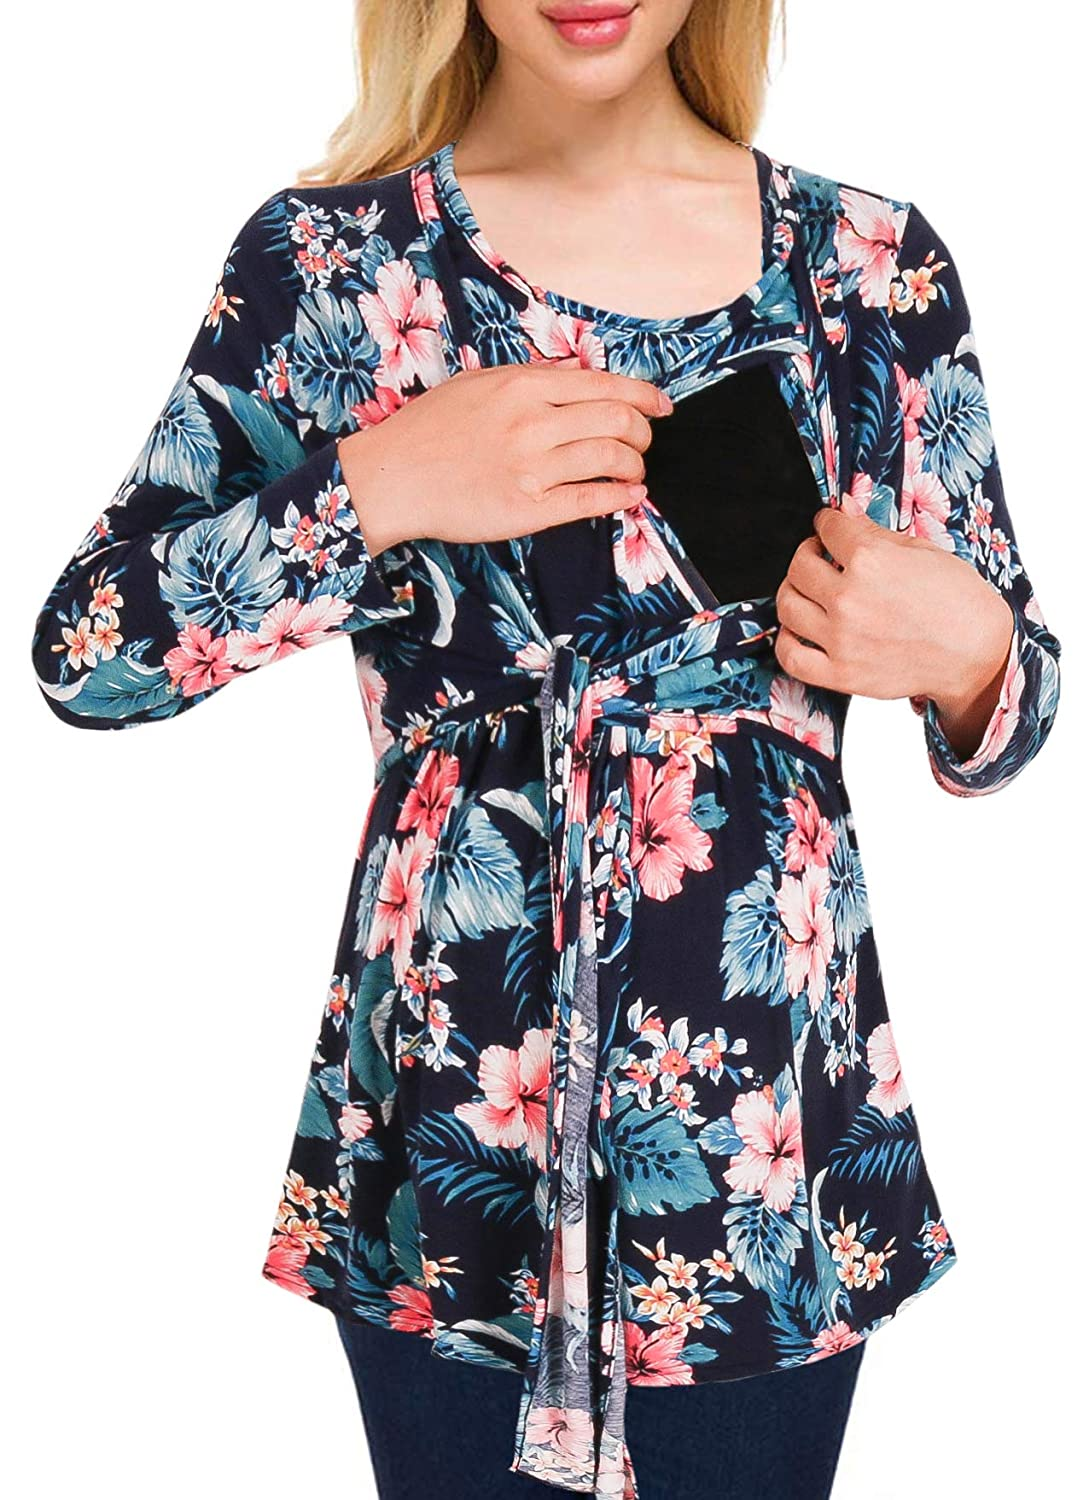 Cinery Women's Tie Front Maternity Top Floral Nursing Tunic Tops for Breastfeeding